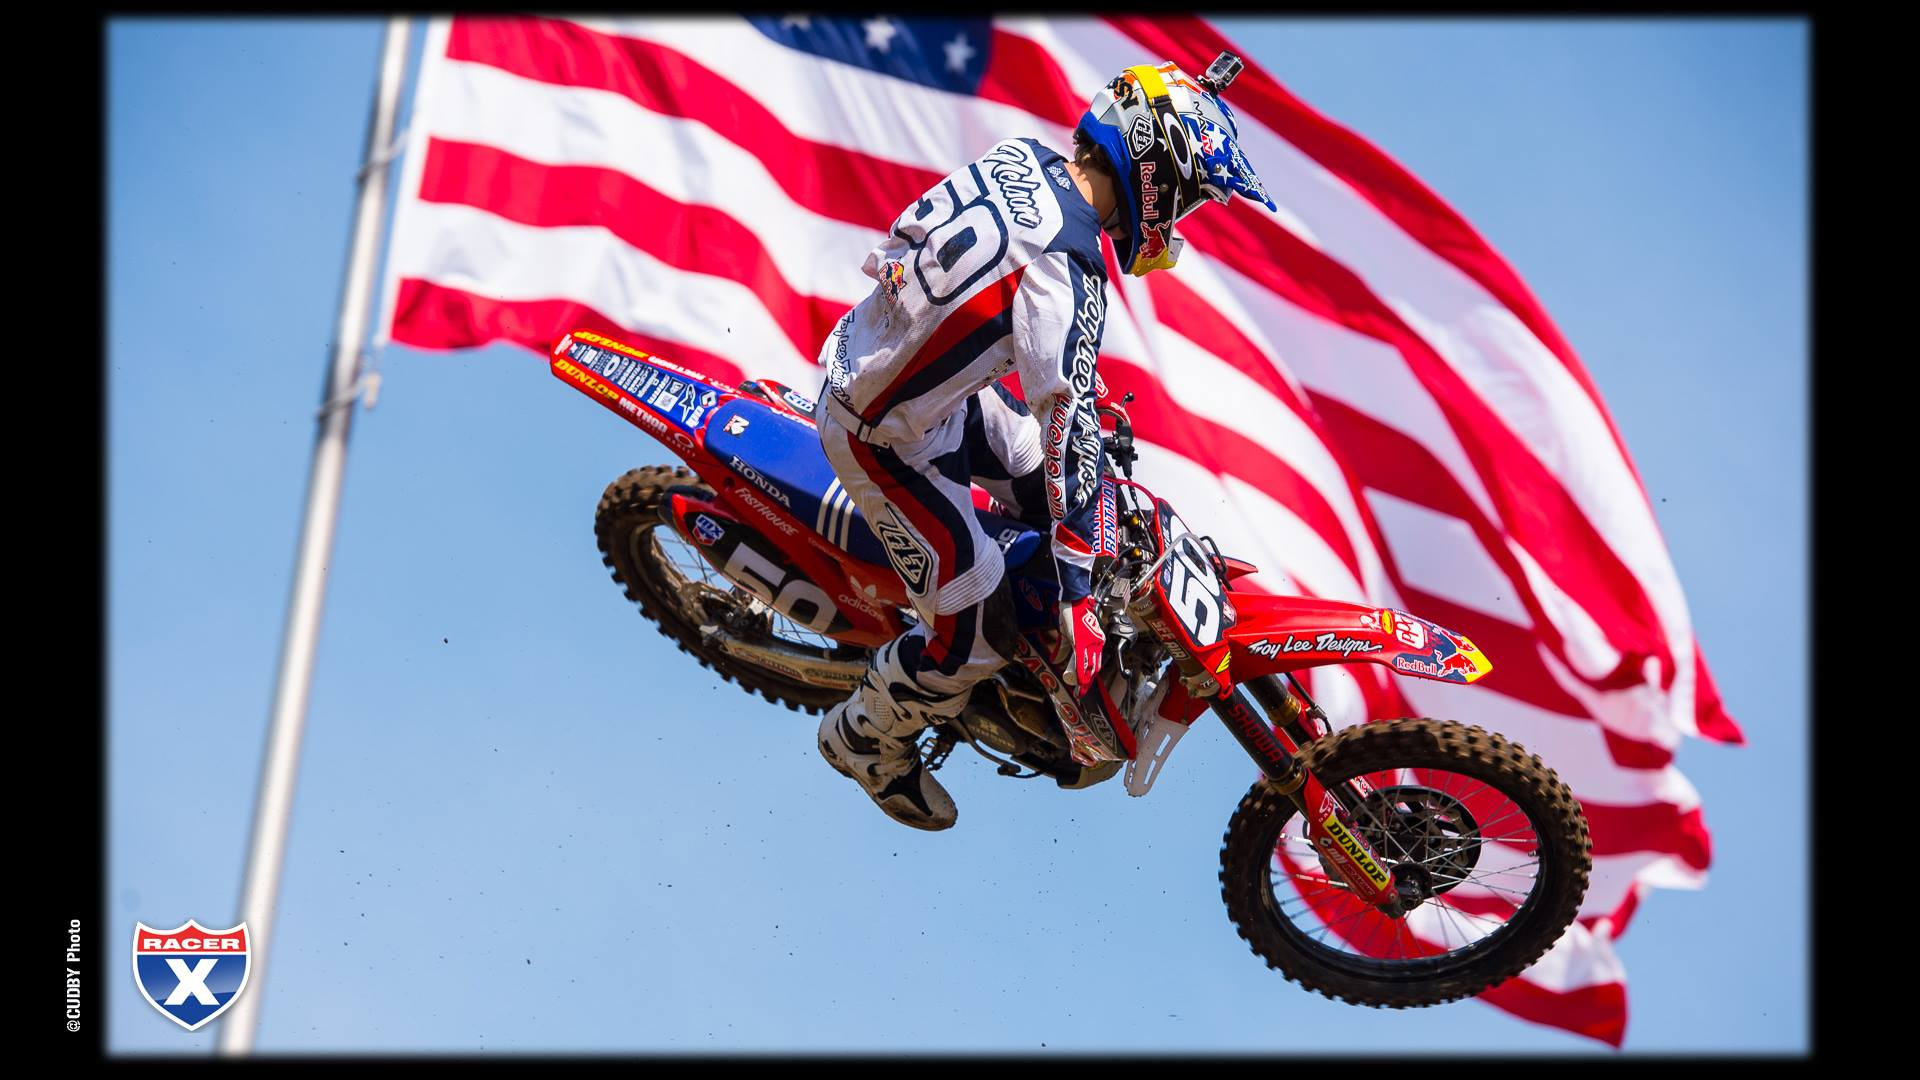 troy lee designs celebrates independence day at red bud